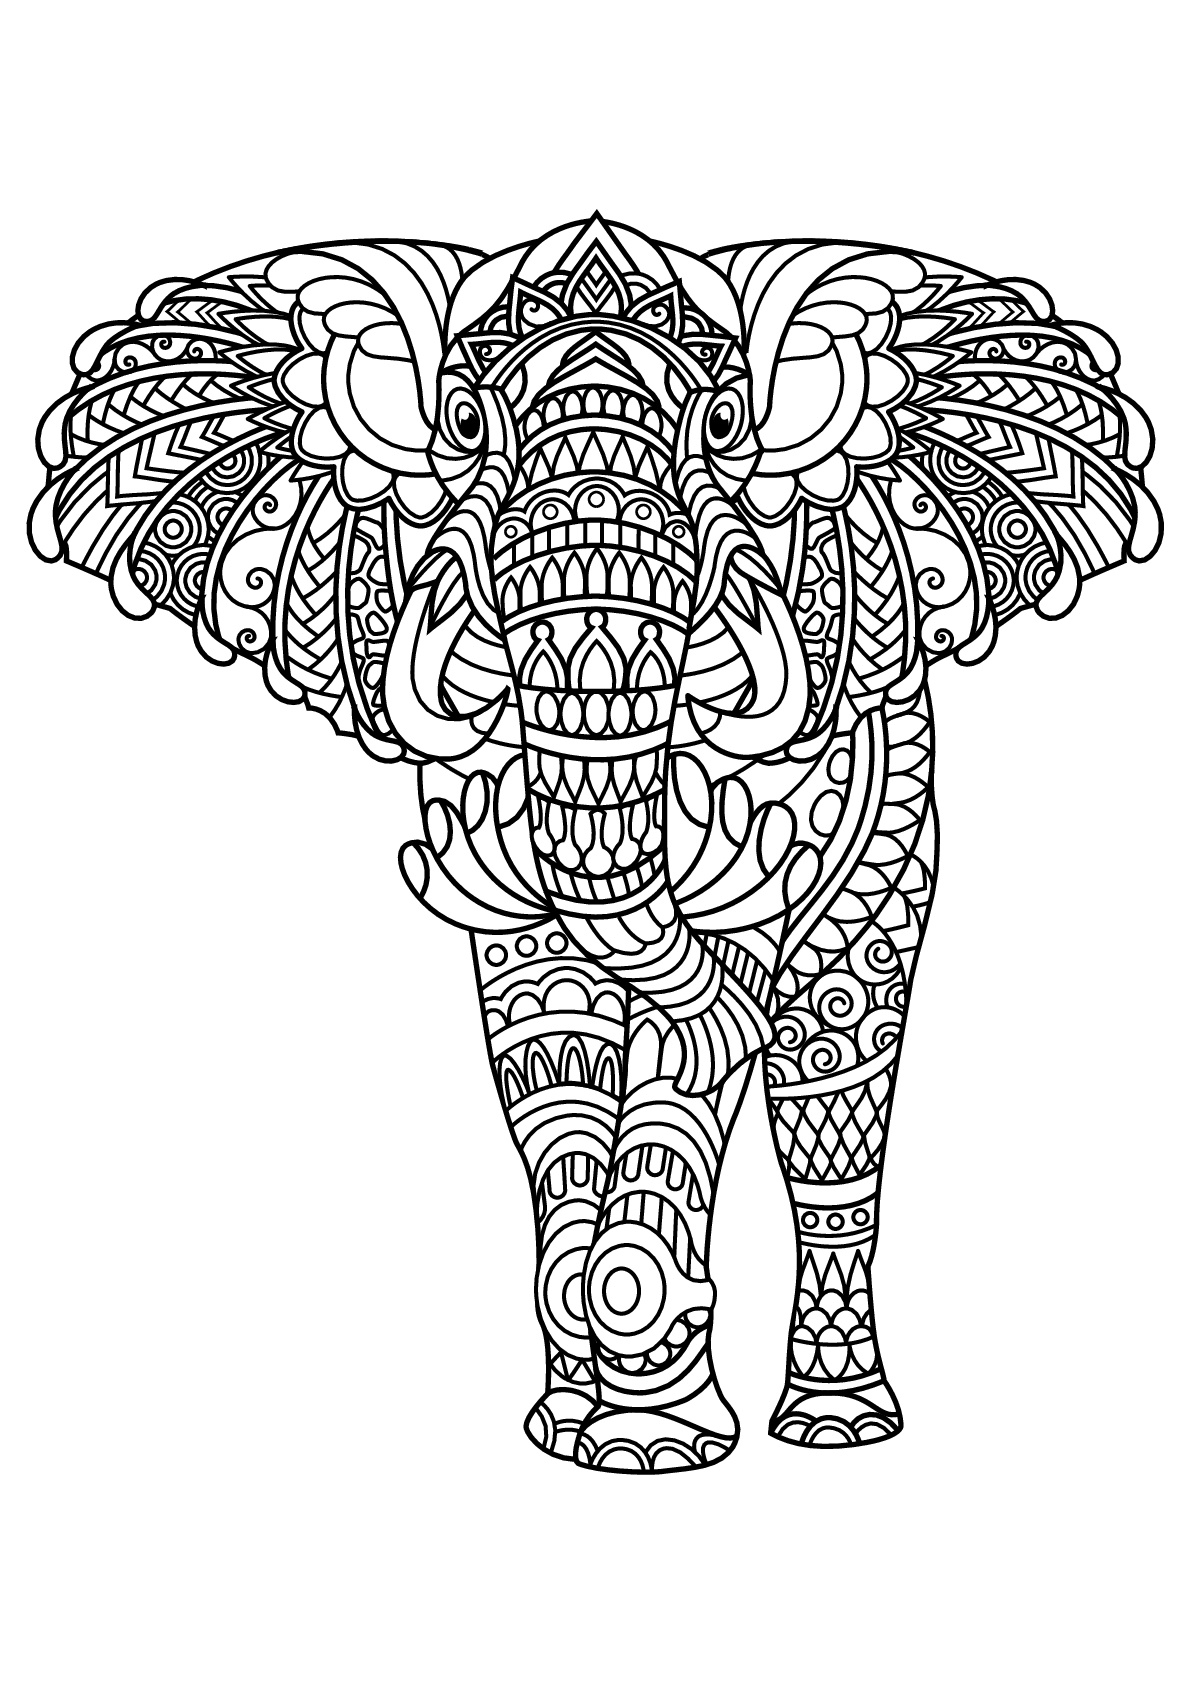 Free book elephant - Elephants Adult Coloring Pages